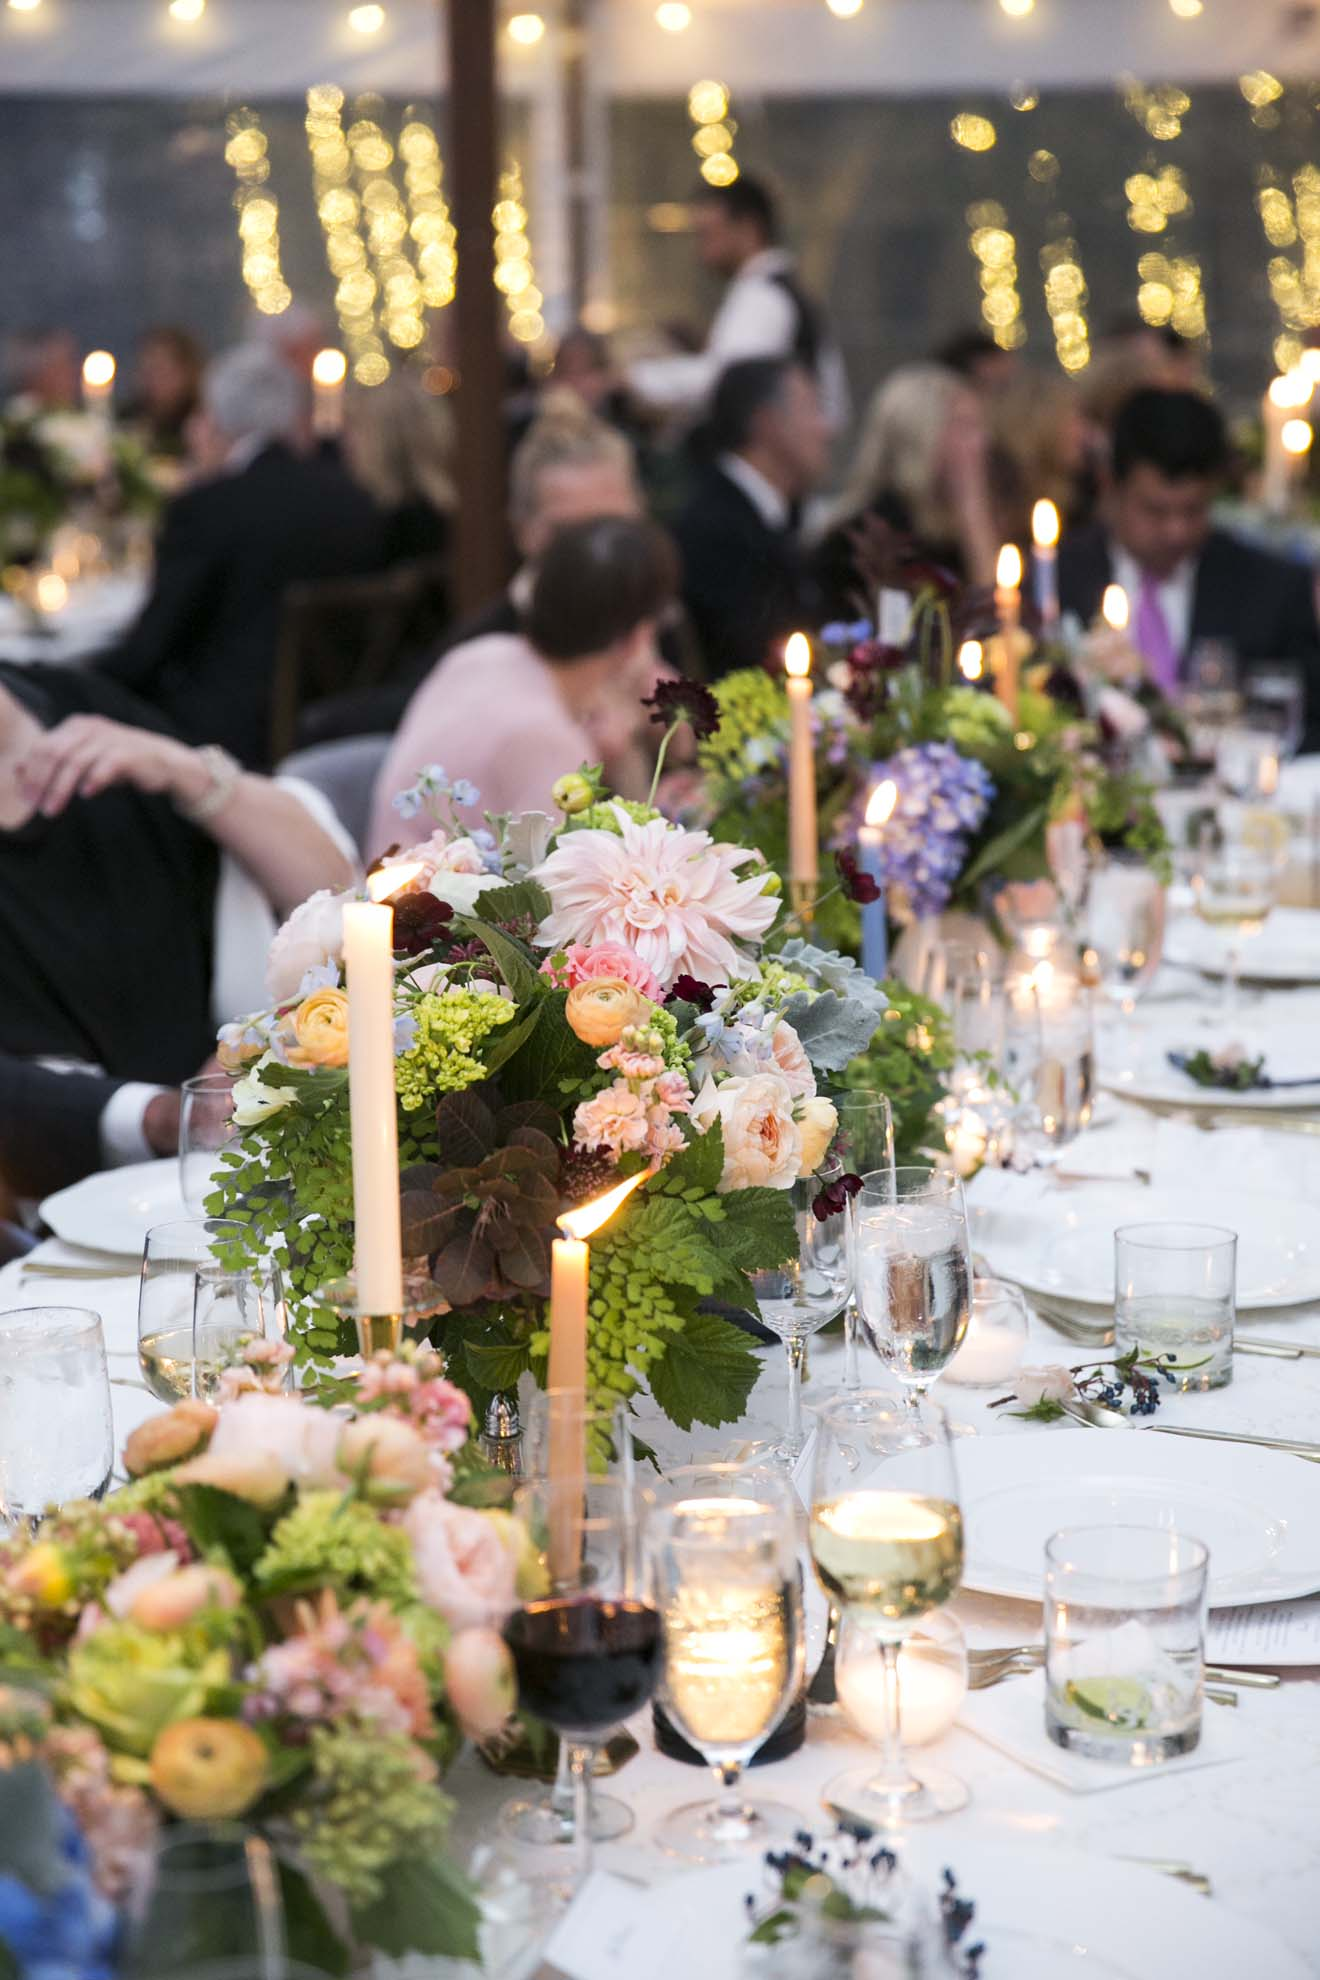 Candle lit wedding reception table